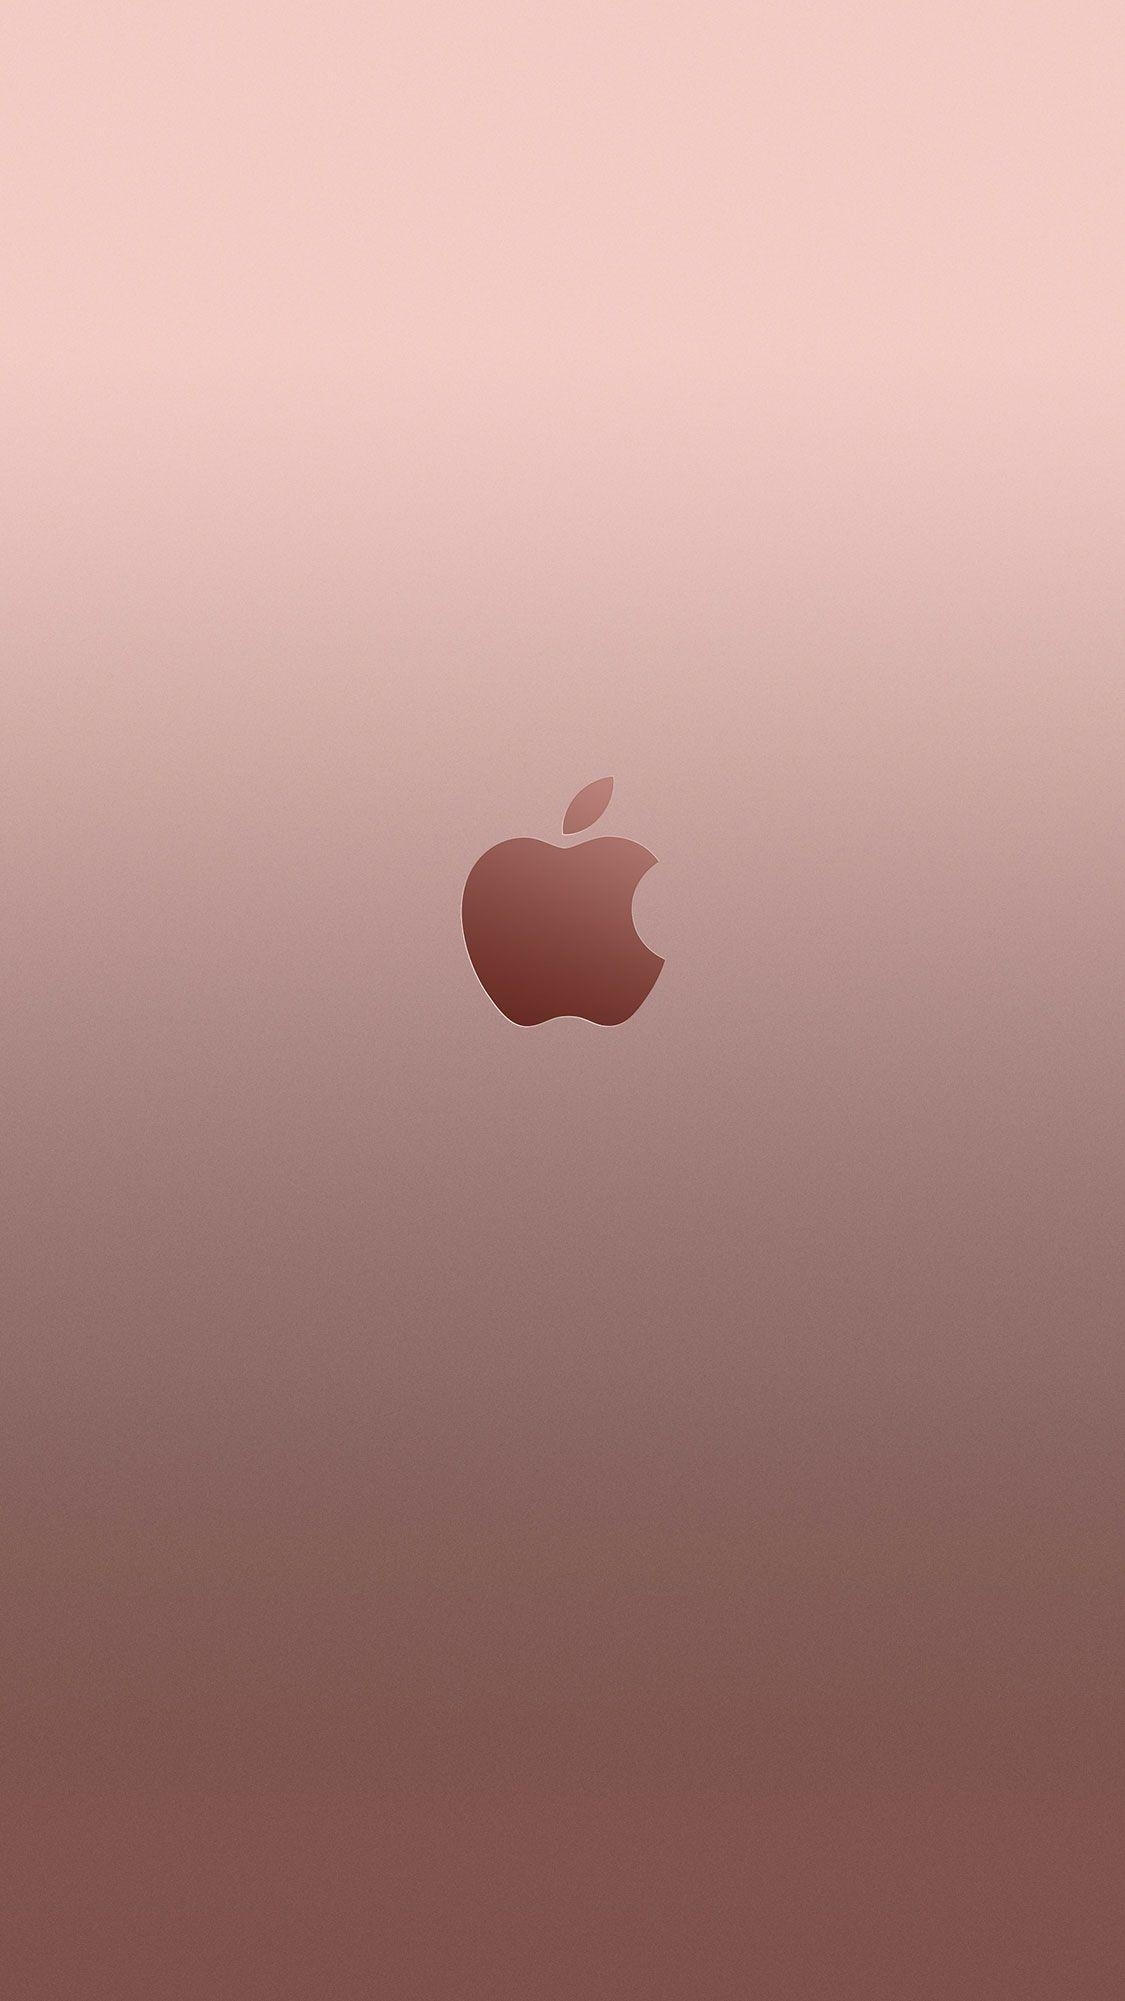 rose gold wallpapers - wallpaper cave